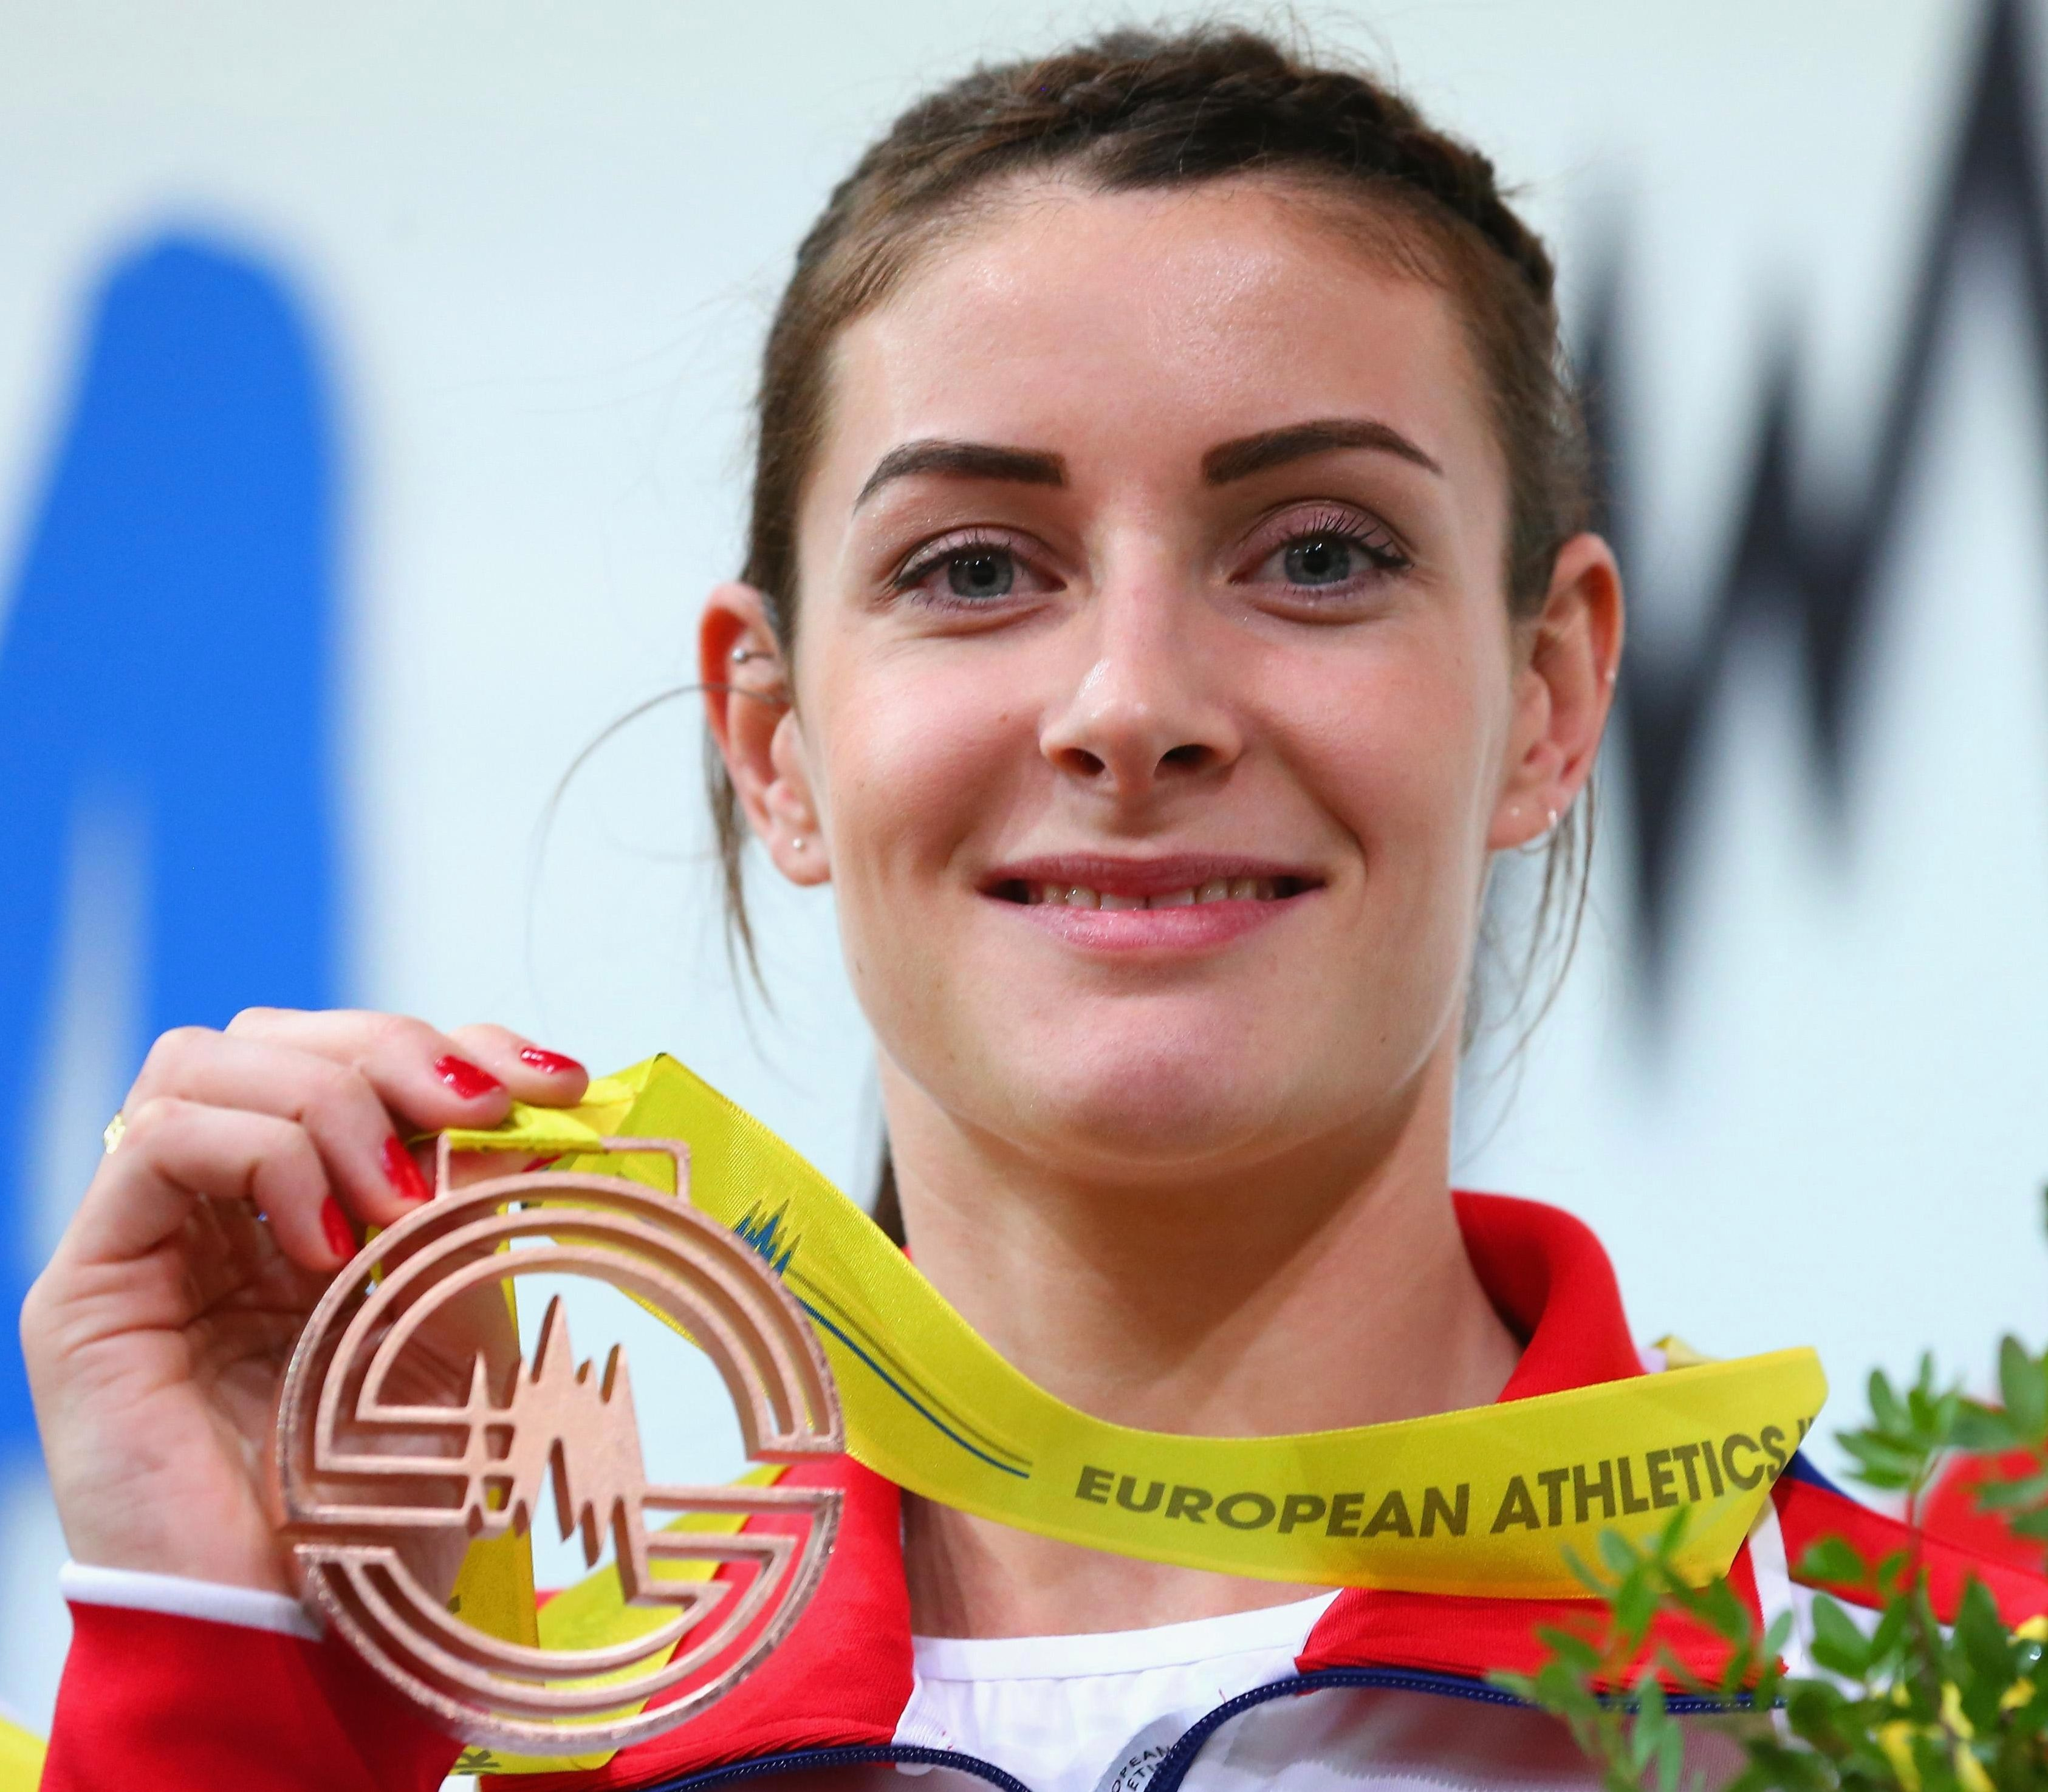 And so has Rio 2016 Olympic 400m runner Seren Bundy-Davies